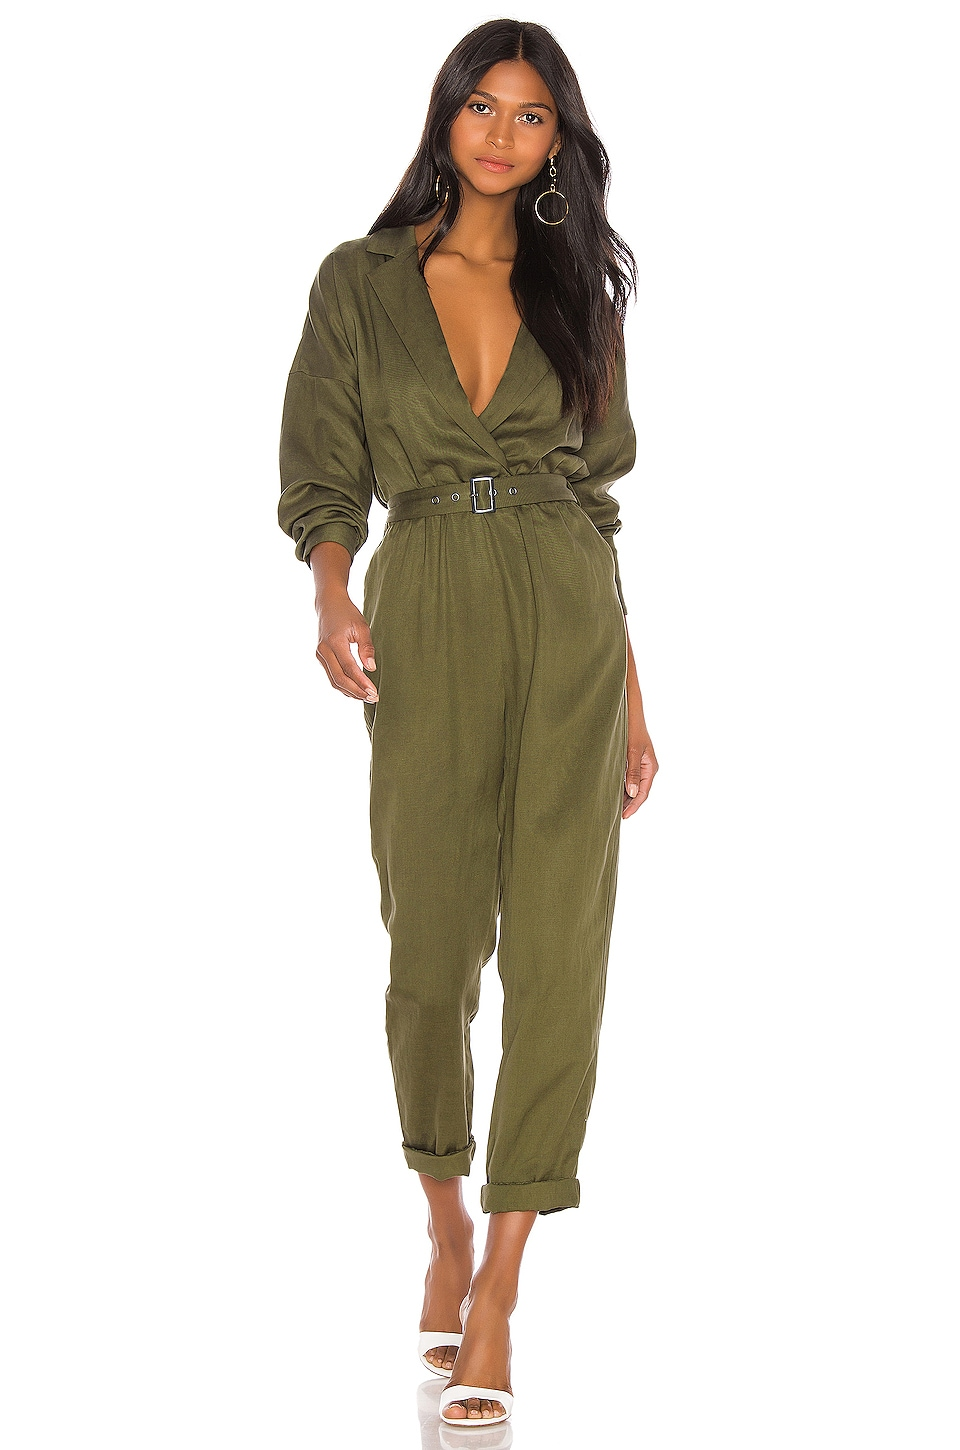 L'Academie Reed Jumpsuit in Green